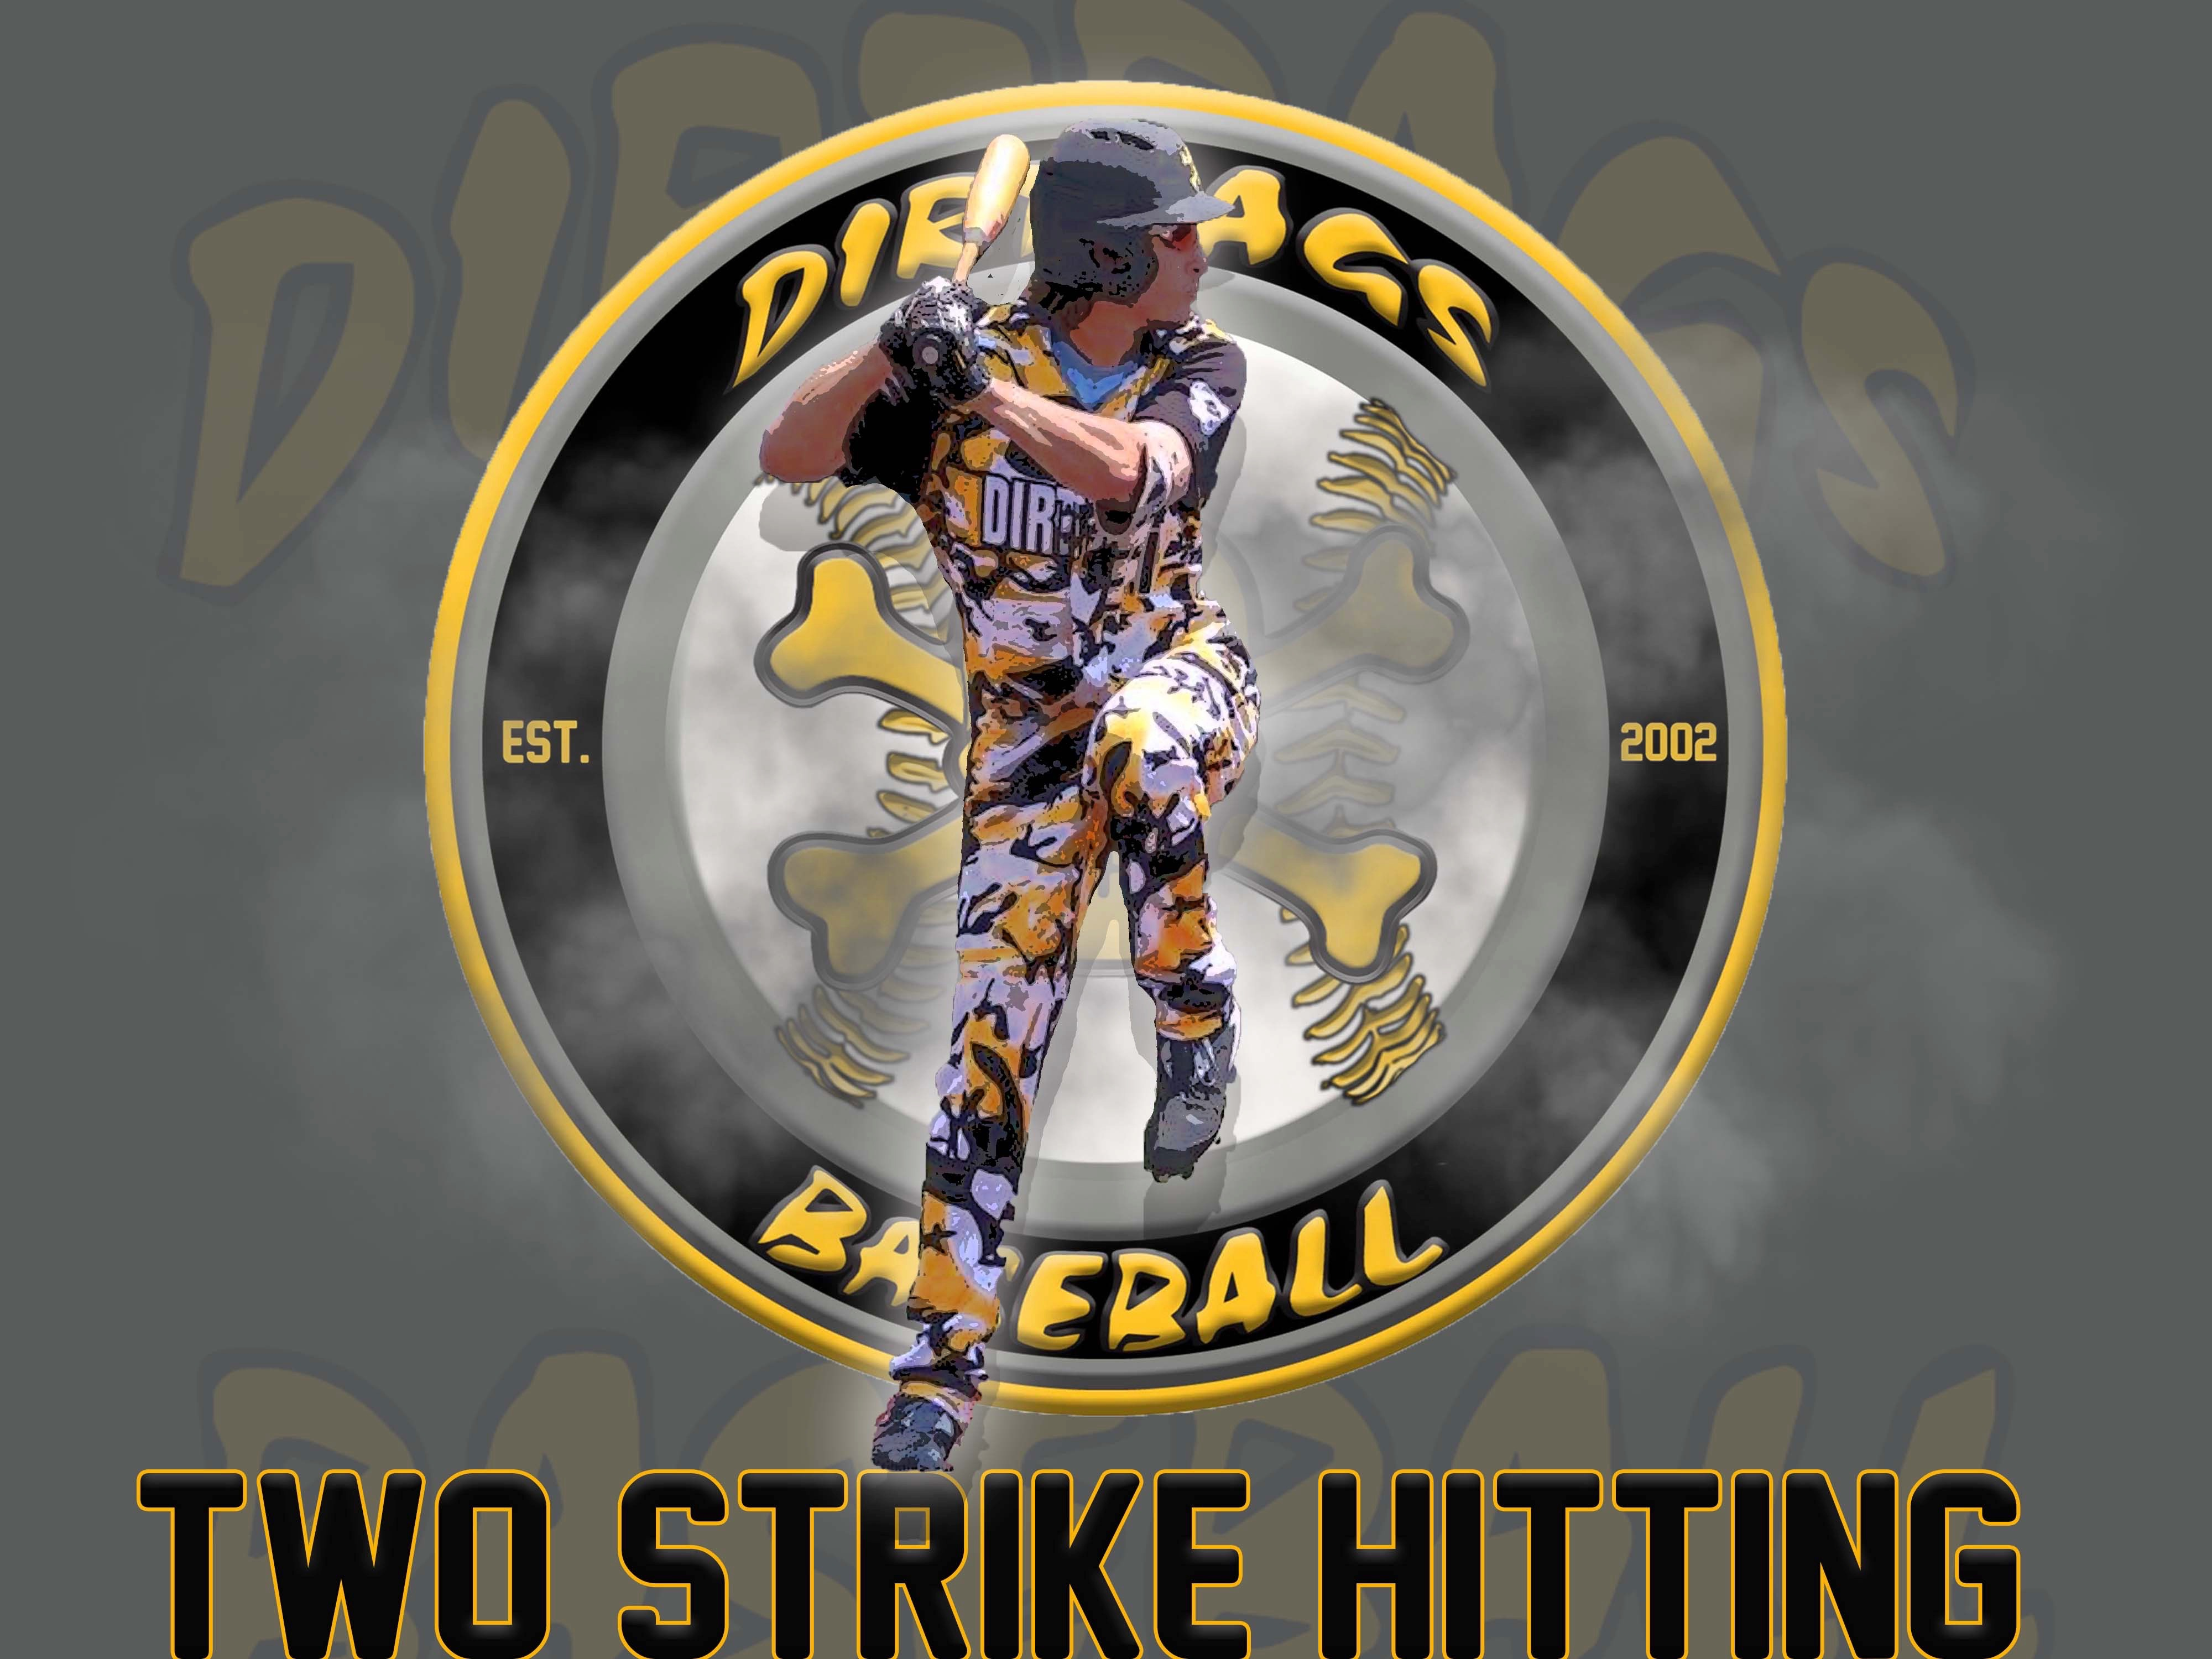 Instructional Friday: Two Strike Hitting